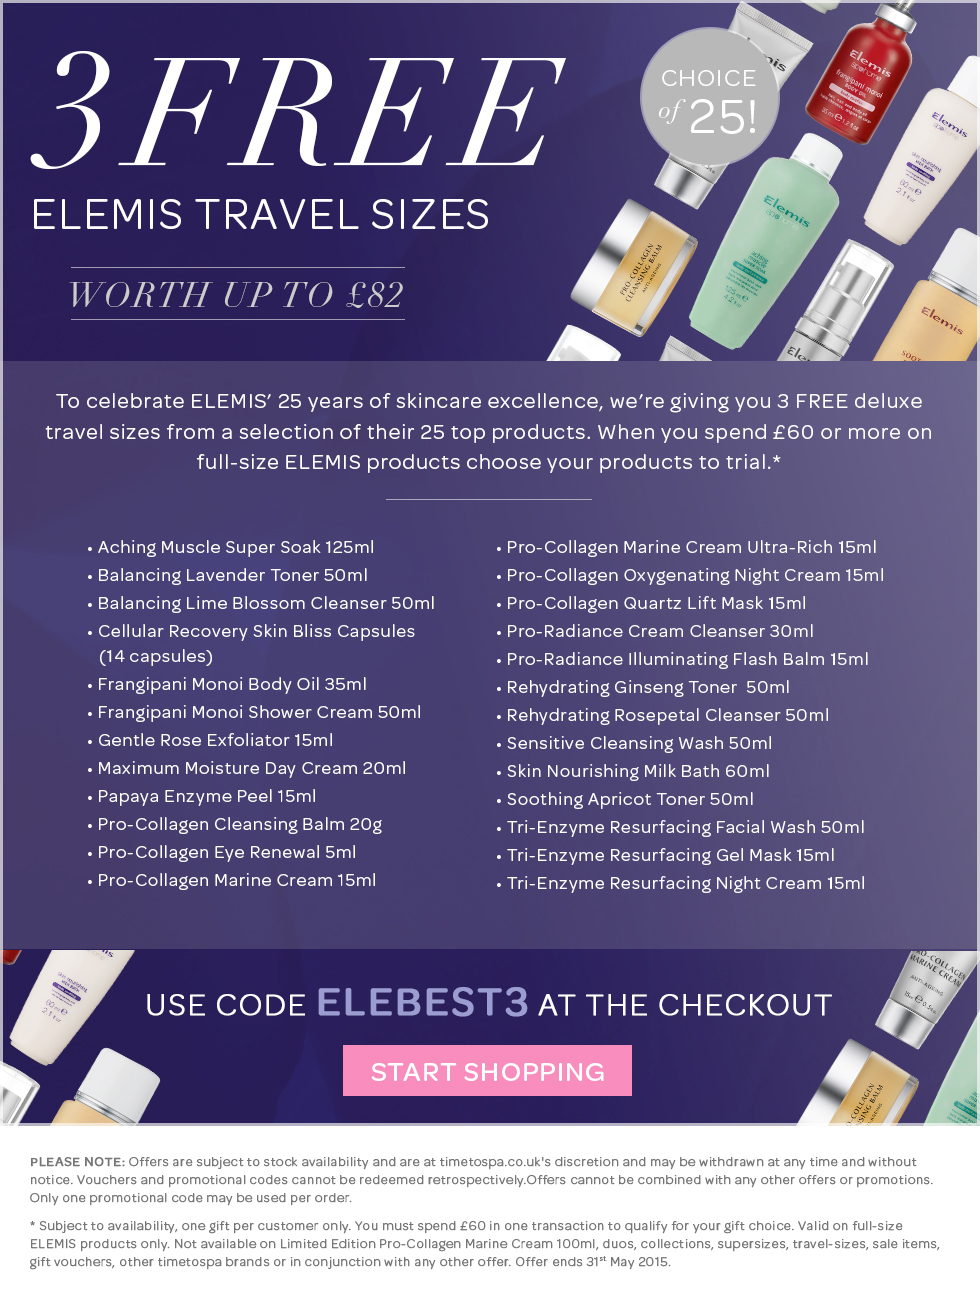 3 FREE ELEMIS Travel Sizes From 25 Best-Sellers - Worth Up To £82